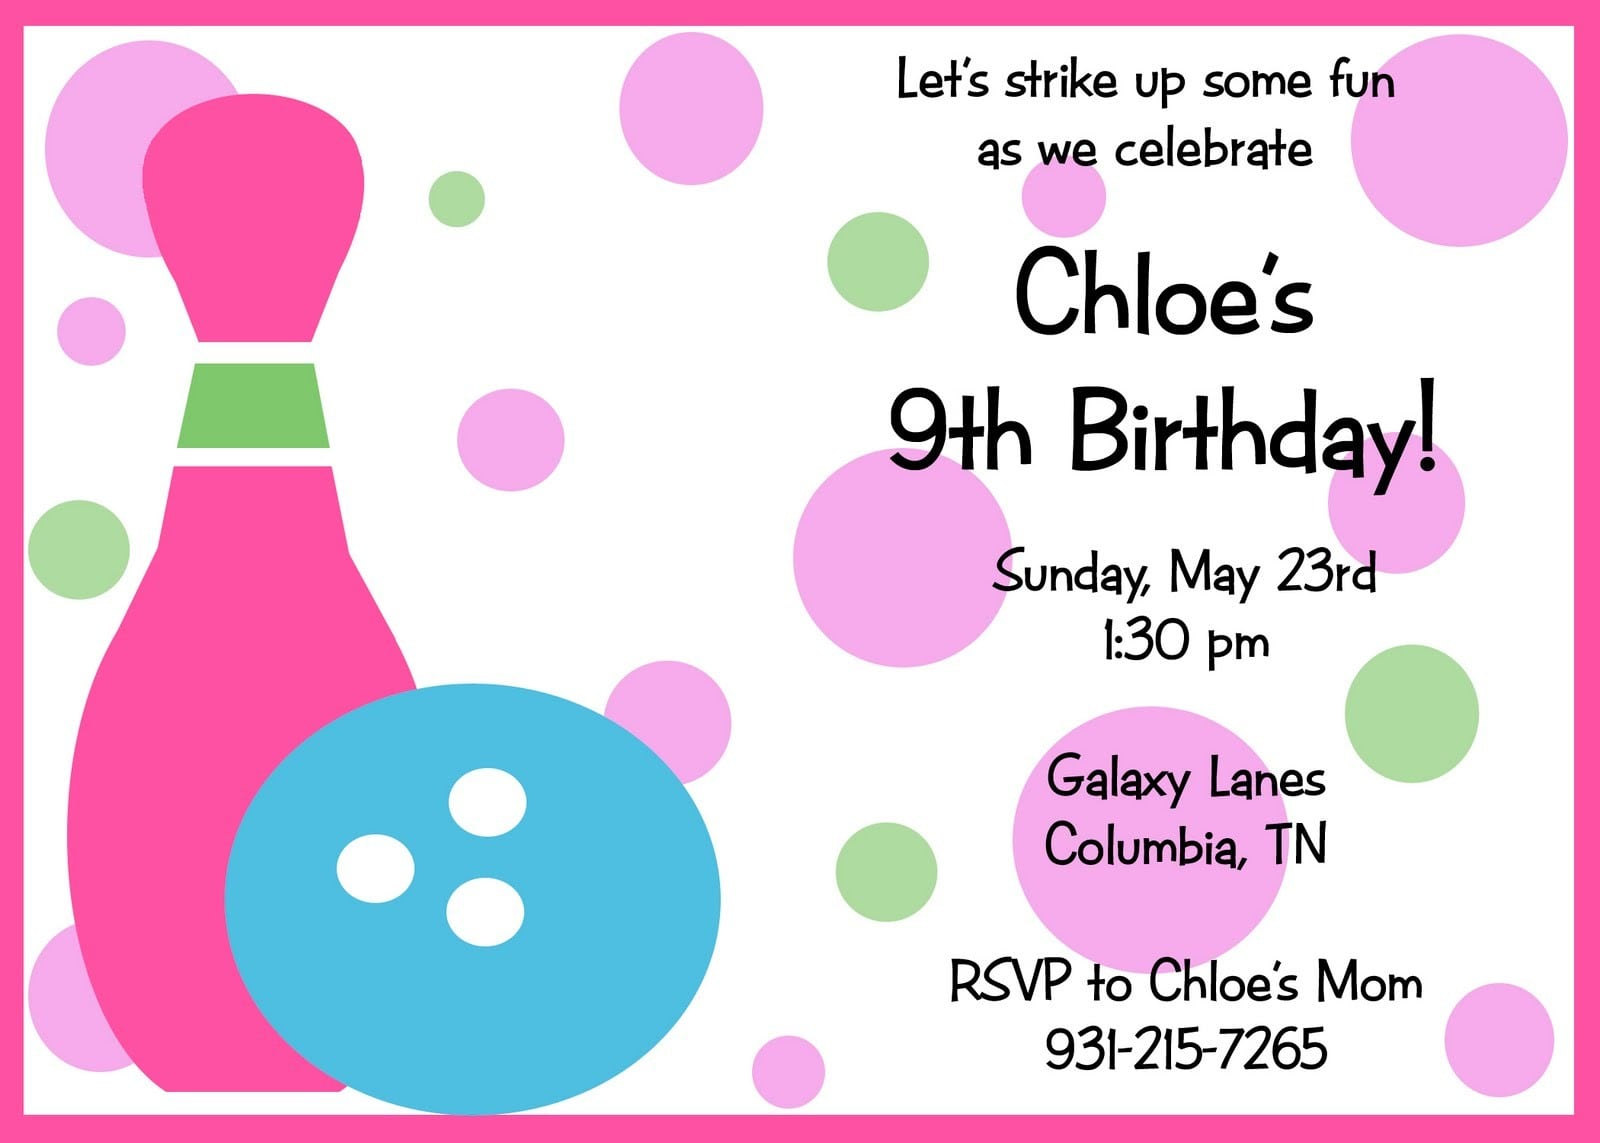 kids birthday party invitations mickey mouse invitations birthday party invitations for kids templates